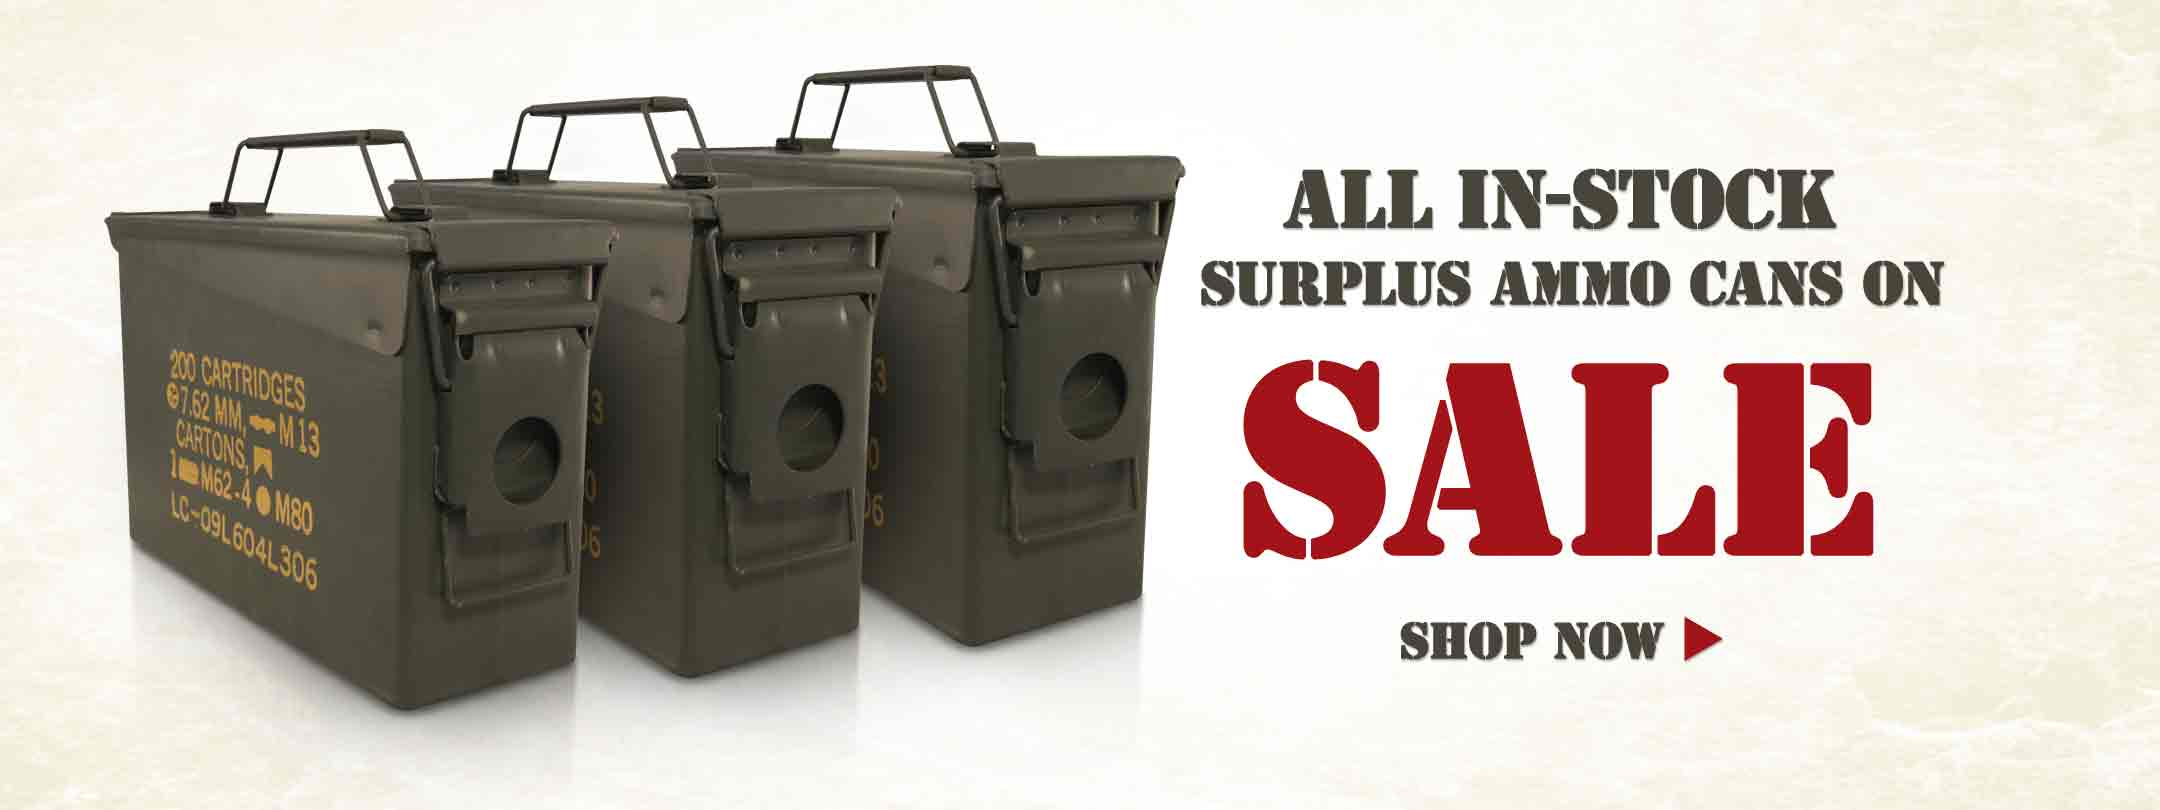 All In-Stock Surplus Ammo Cans on Sale